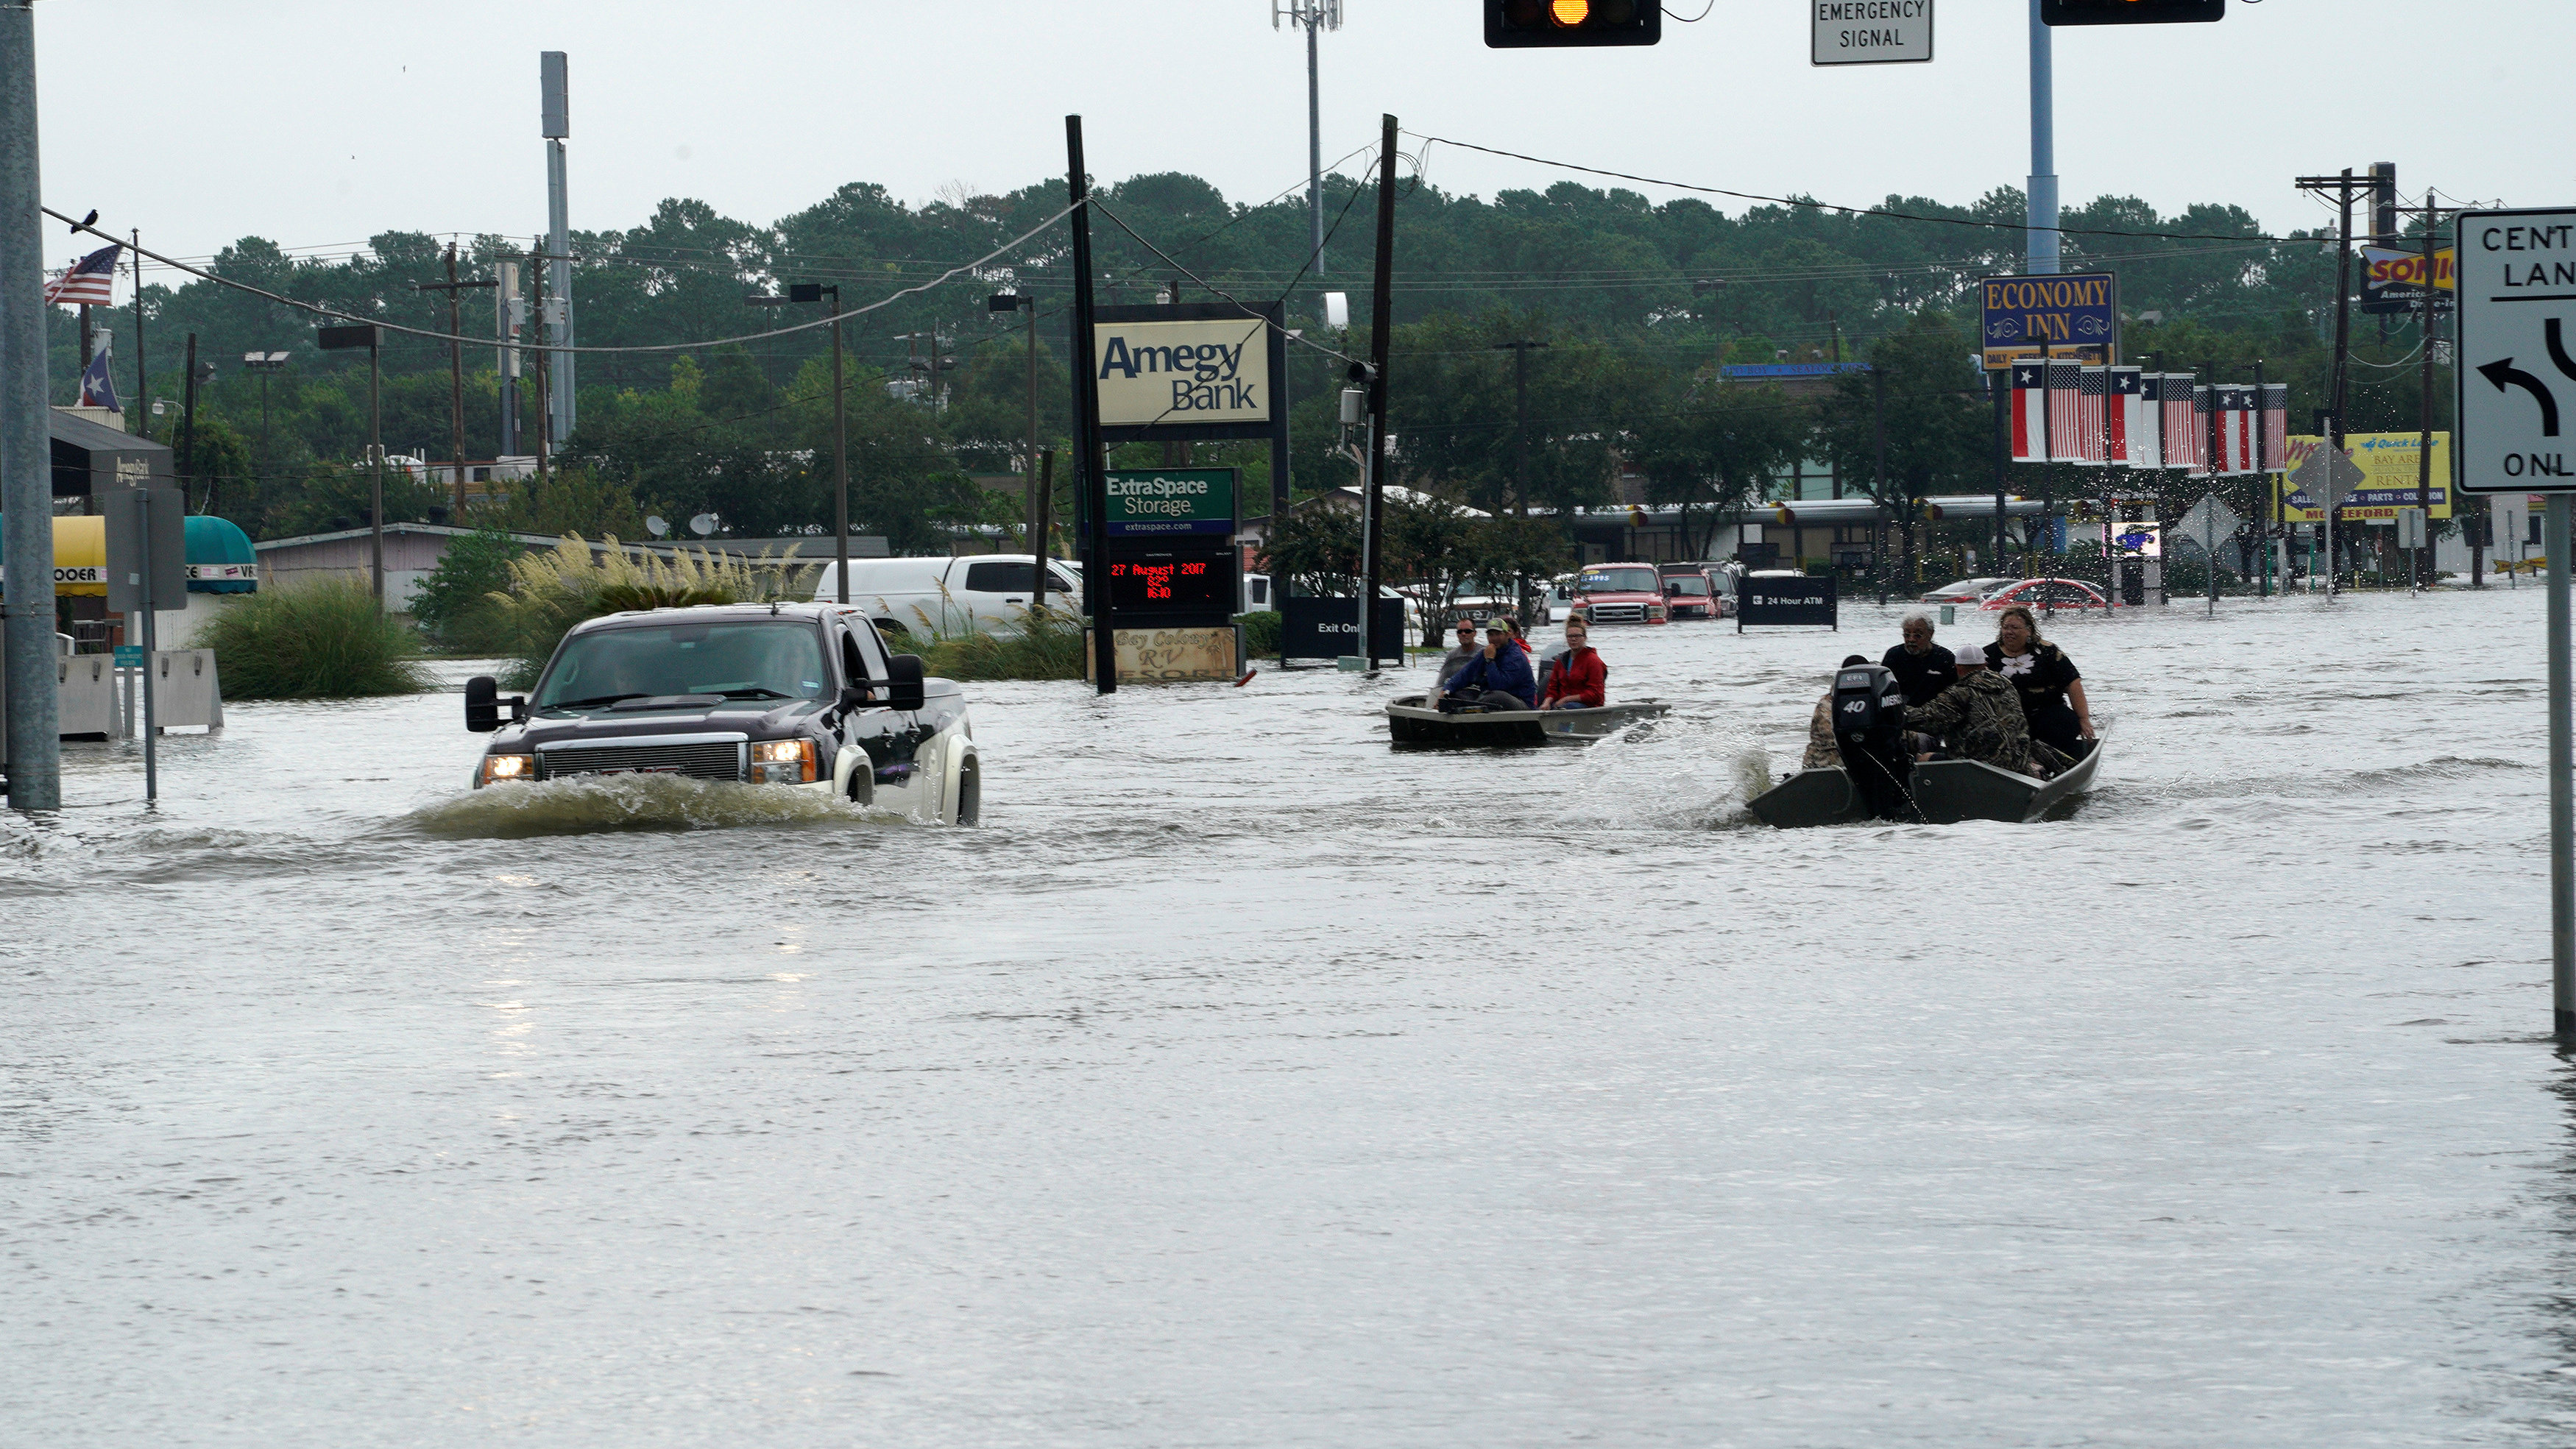 Flood waters from Hurricane Harvey cover the main street in Dickinson, Texas August 27, 2017.